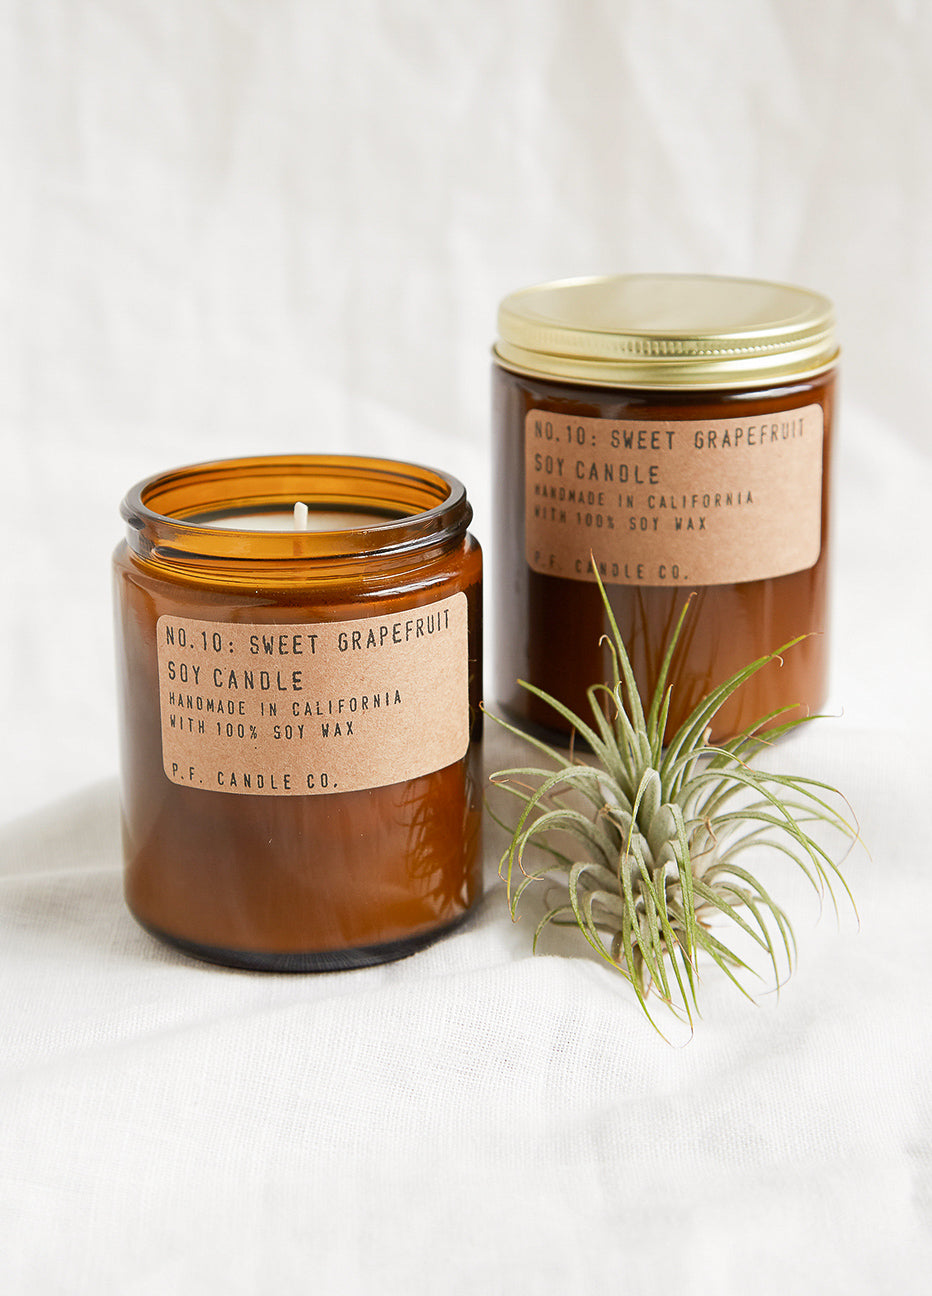 PF Candle Co. Sweet Grapefruit